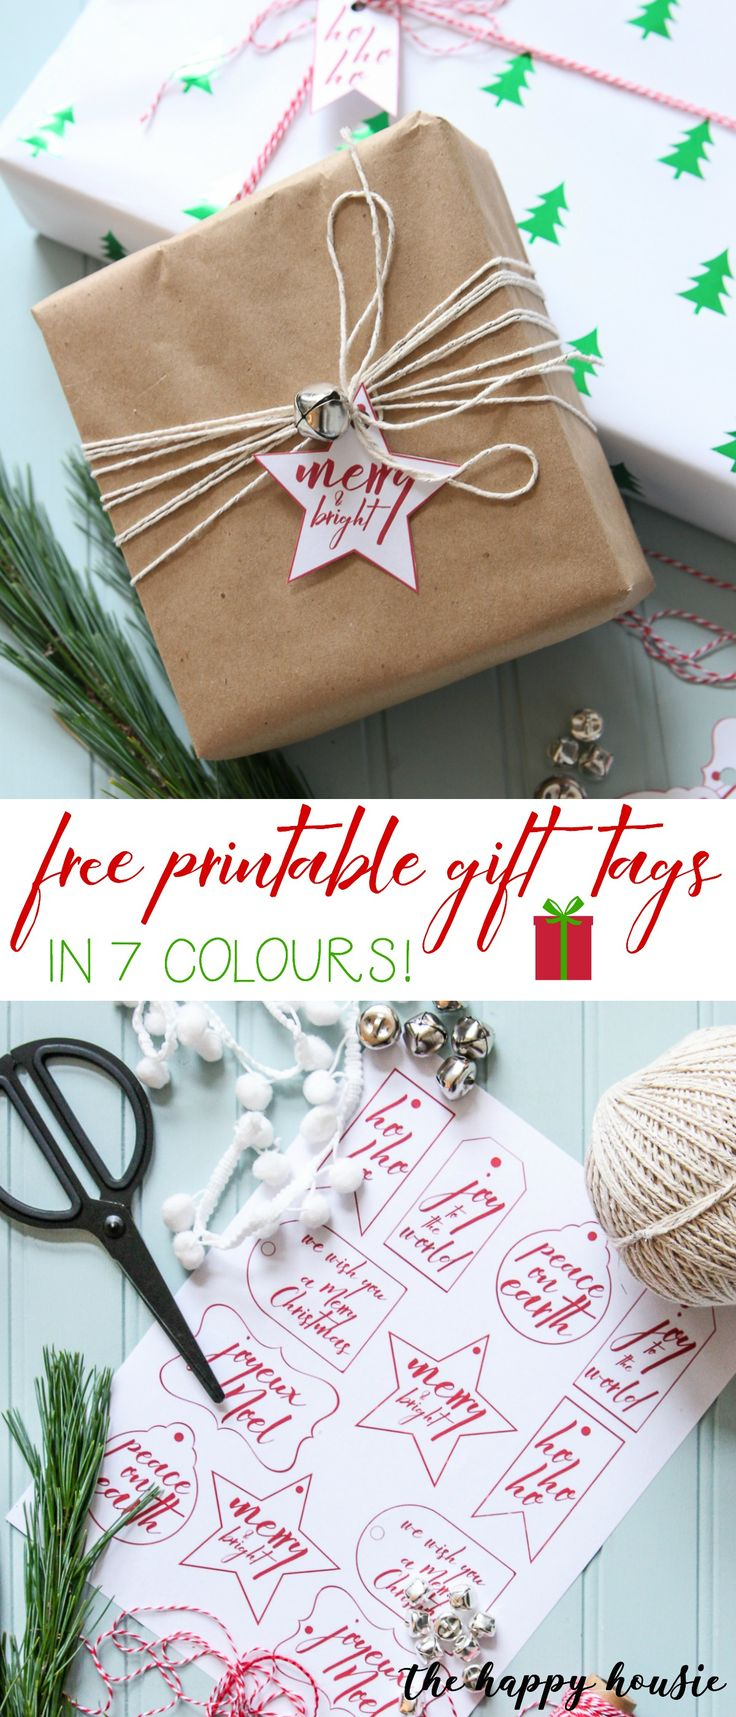 Jingle Bell Gift Wrapping with Free Printable Christmas Gift Labels | The Happy Housie #giftwrap #christmasdecoration